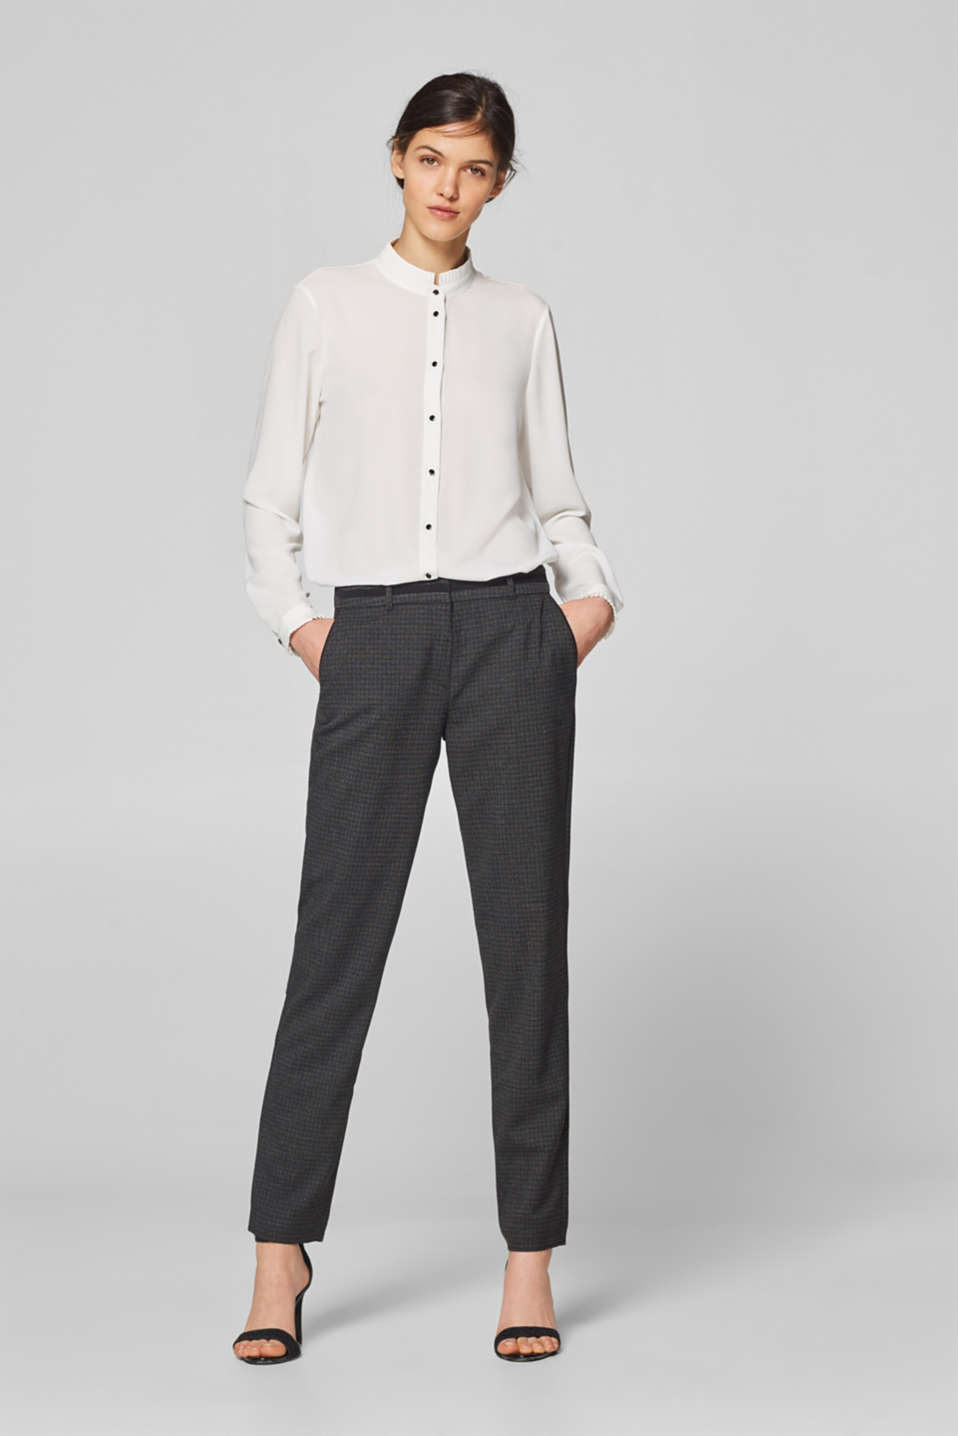 Esprit - Stretch trousers with woven checks and embellished waistband